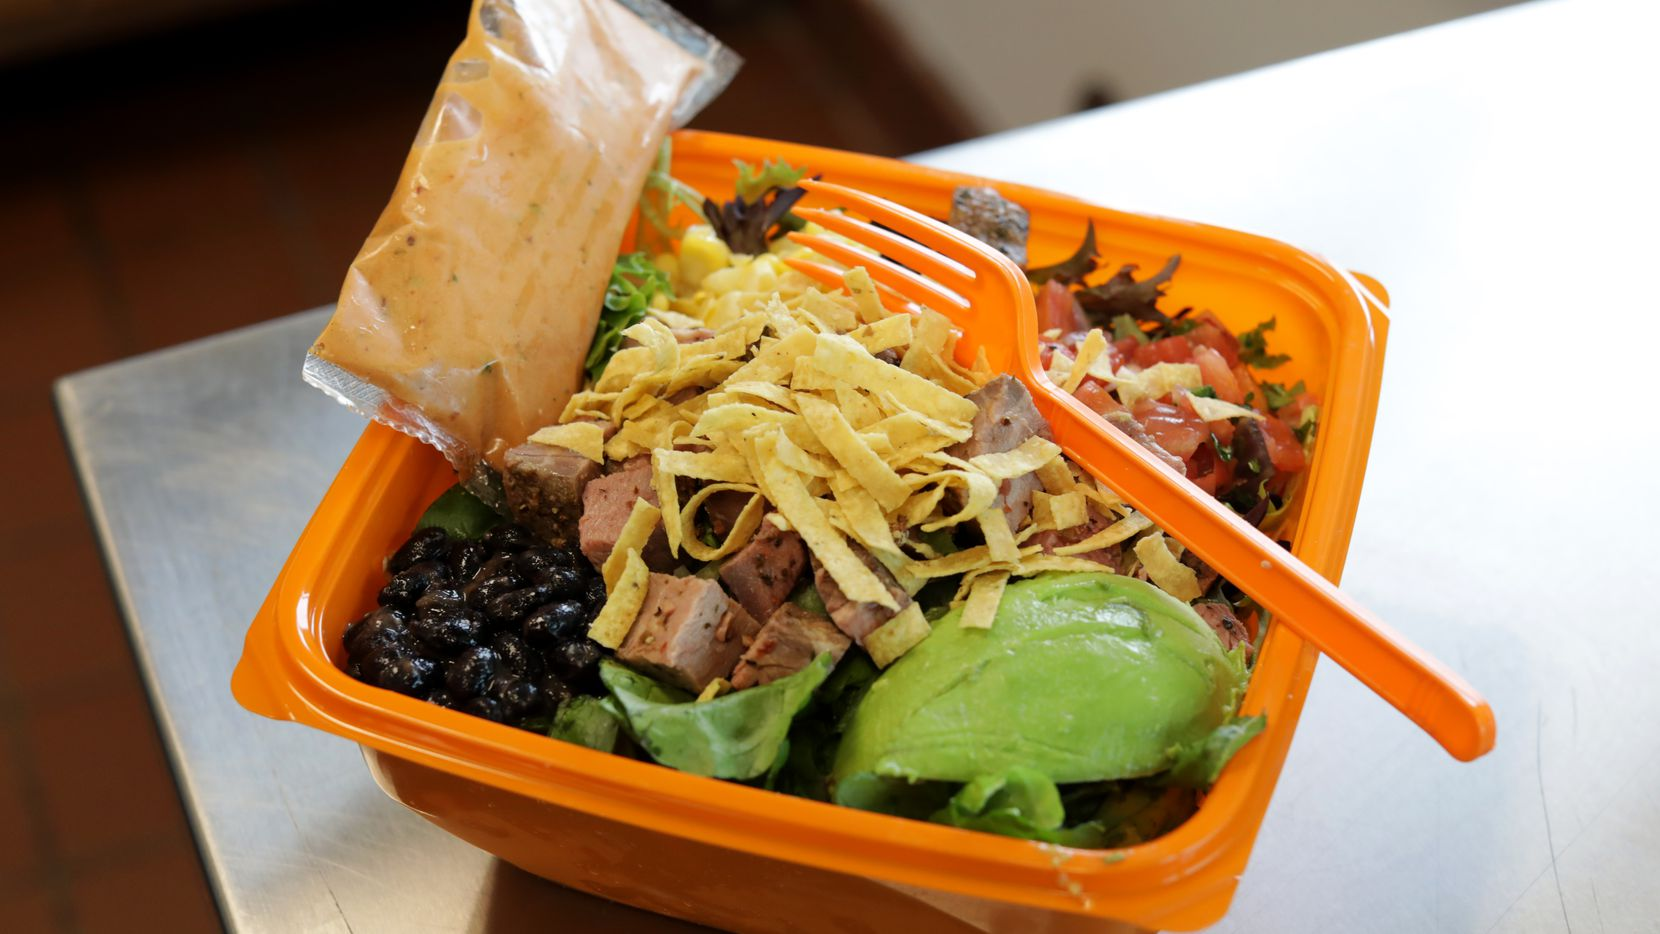 The Barbecue Ranch with Steak is one of about 10 salad options at Salad And Go. The first shop outside of Arizona opened in Plano on May 5, 2021. Salad and Go stores are expected to open in Plano, Richardson, Dallas and Fort Worth.